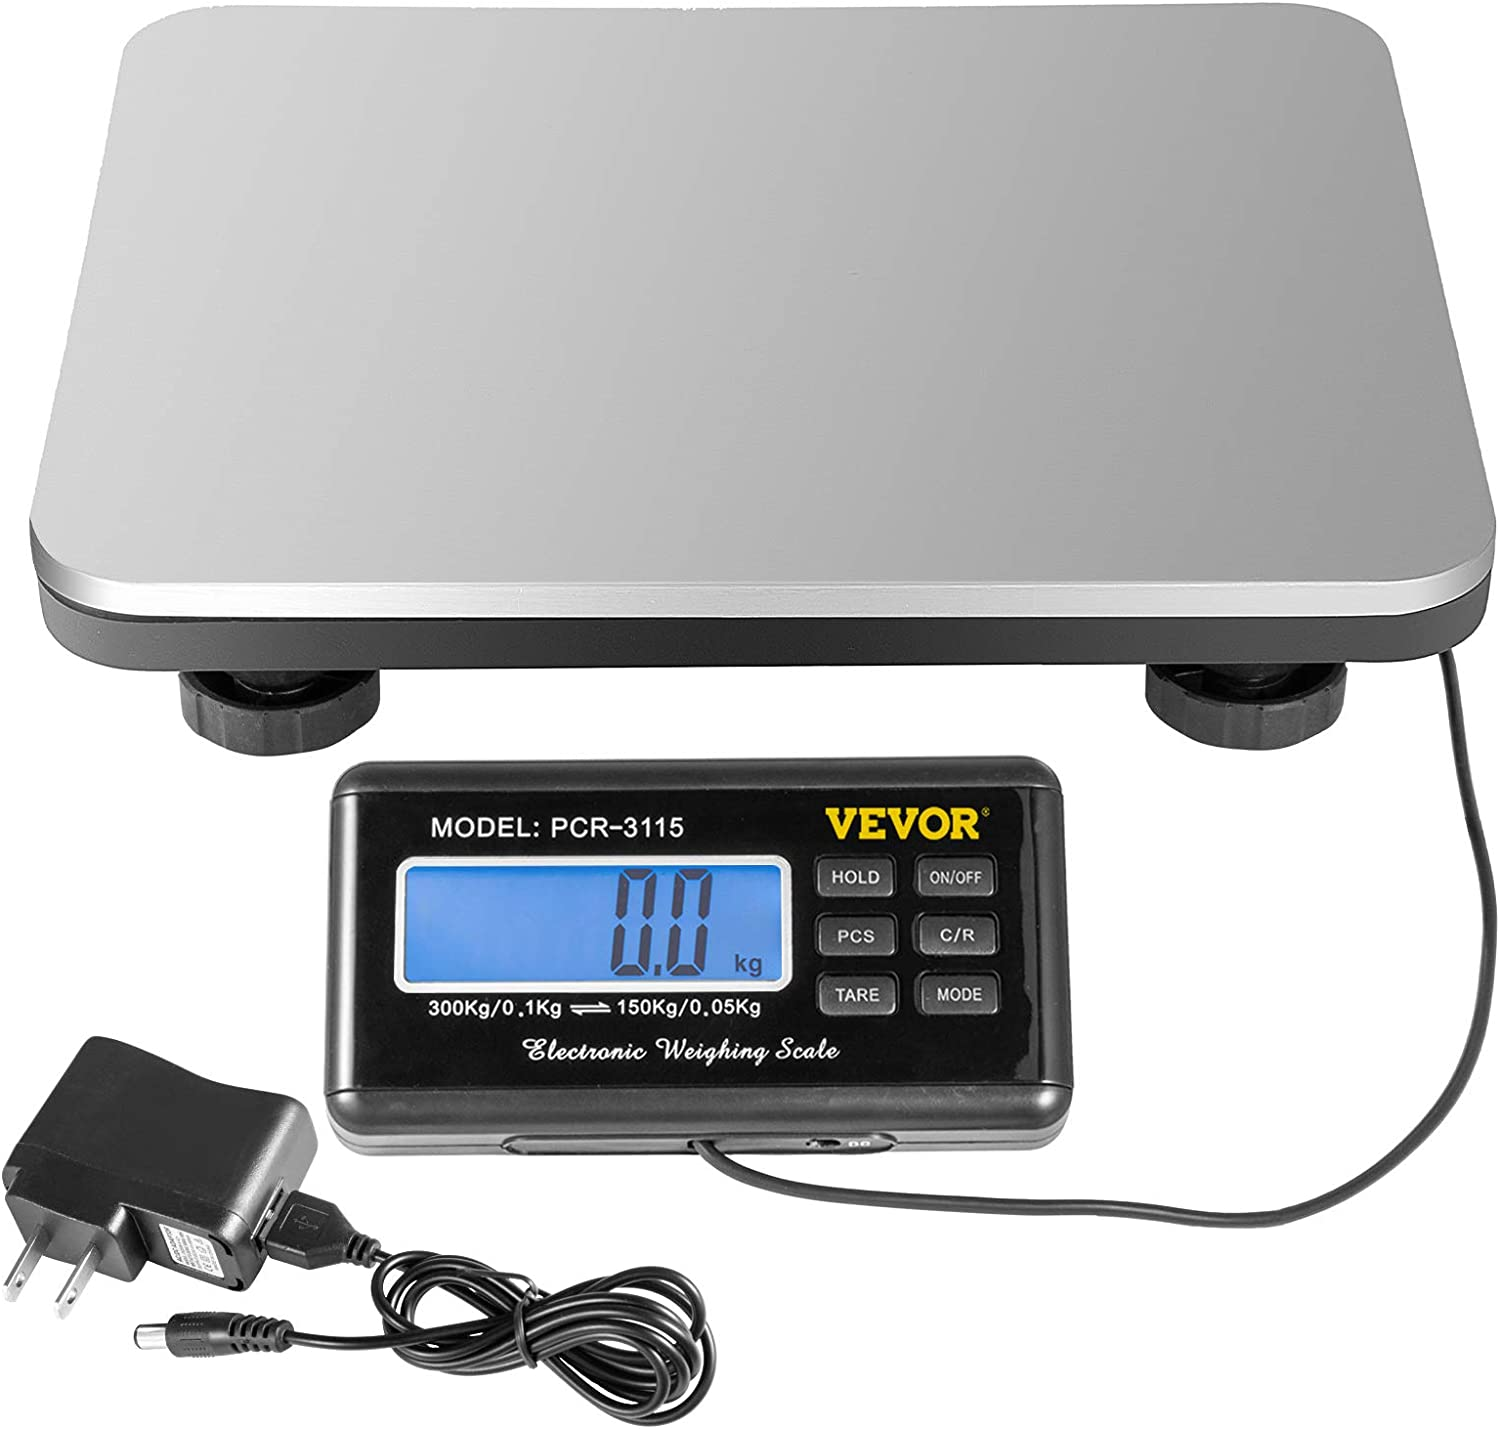 220V Digital Postal Scale Stainless Steel Rustproof Scale with Power Adapter LCD Screen for Post//Office//Warehouse 4 AA Battery VEVOR Postal Scale 660 lbs//0.1 kg Capacity Postal Weight Scale